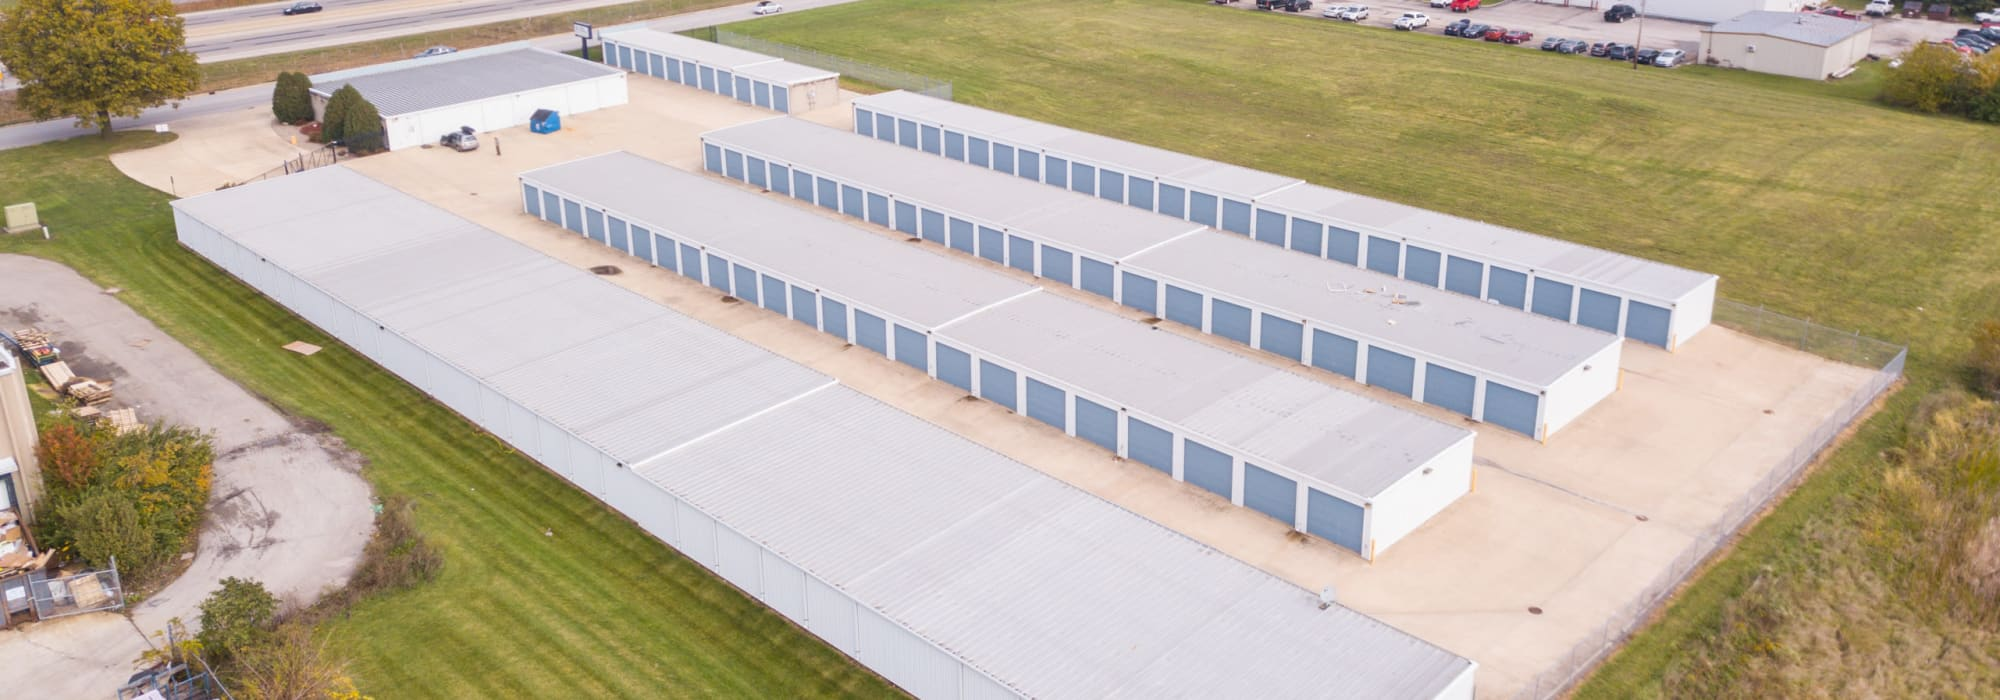 Prime Storage In Champaign, IL